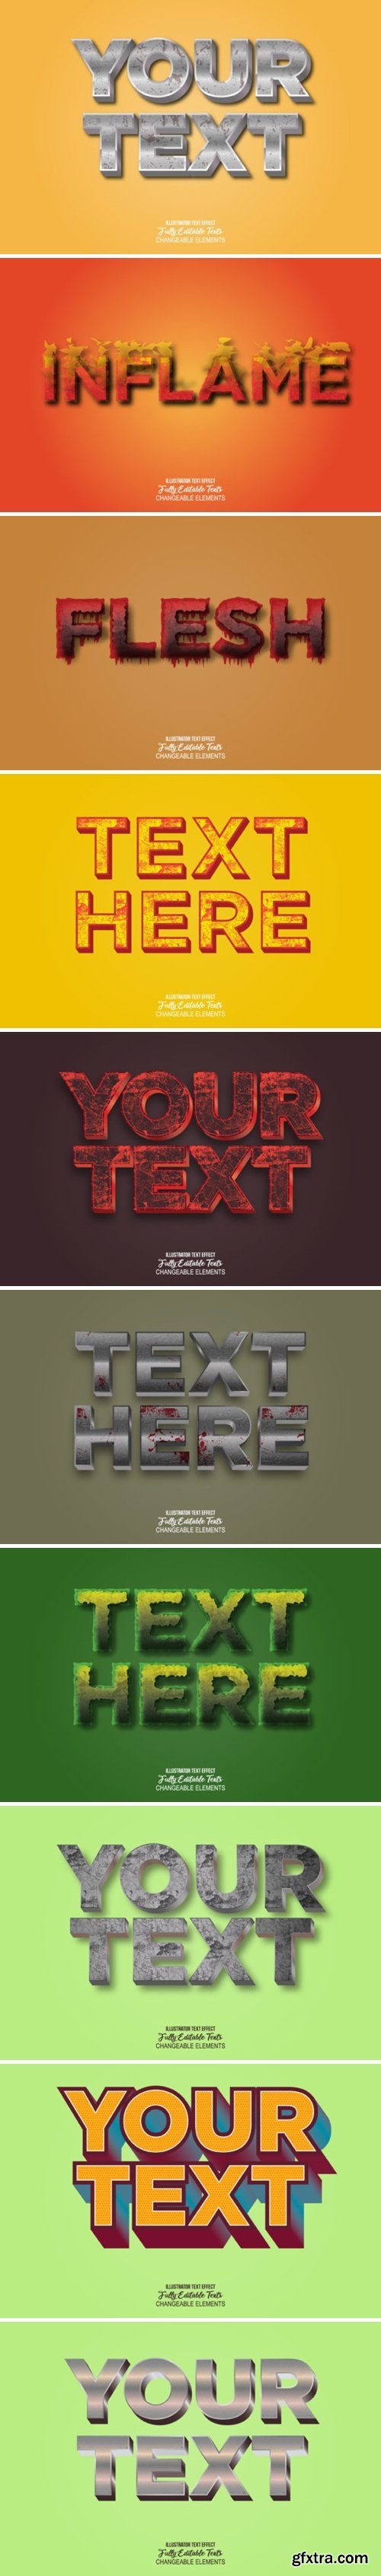 3D Realistic Text Effect Style